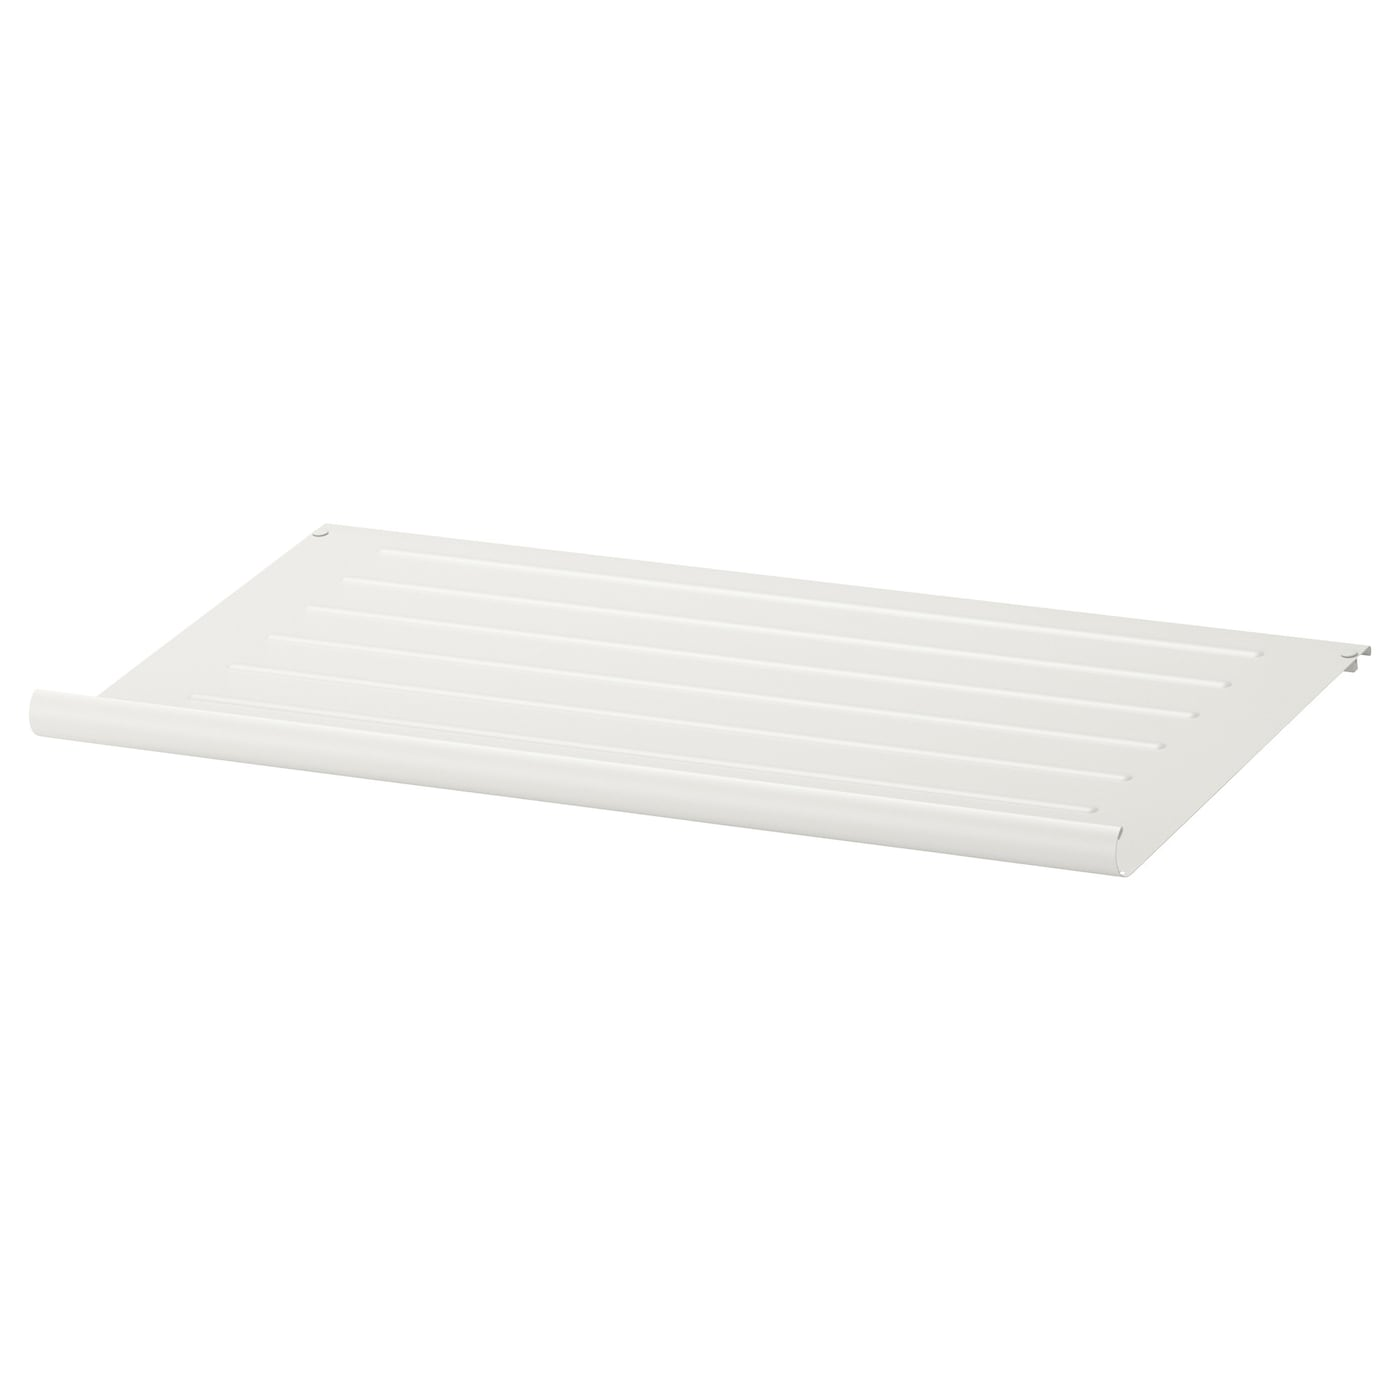 Komplement shoe shelf white 75x35 cm ikea for Ikea complementi